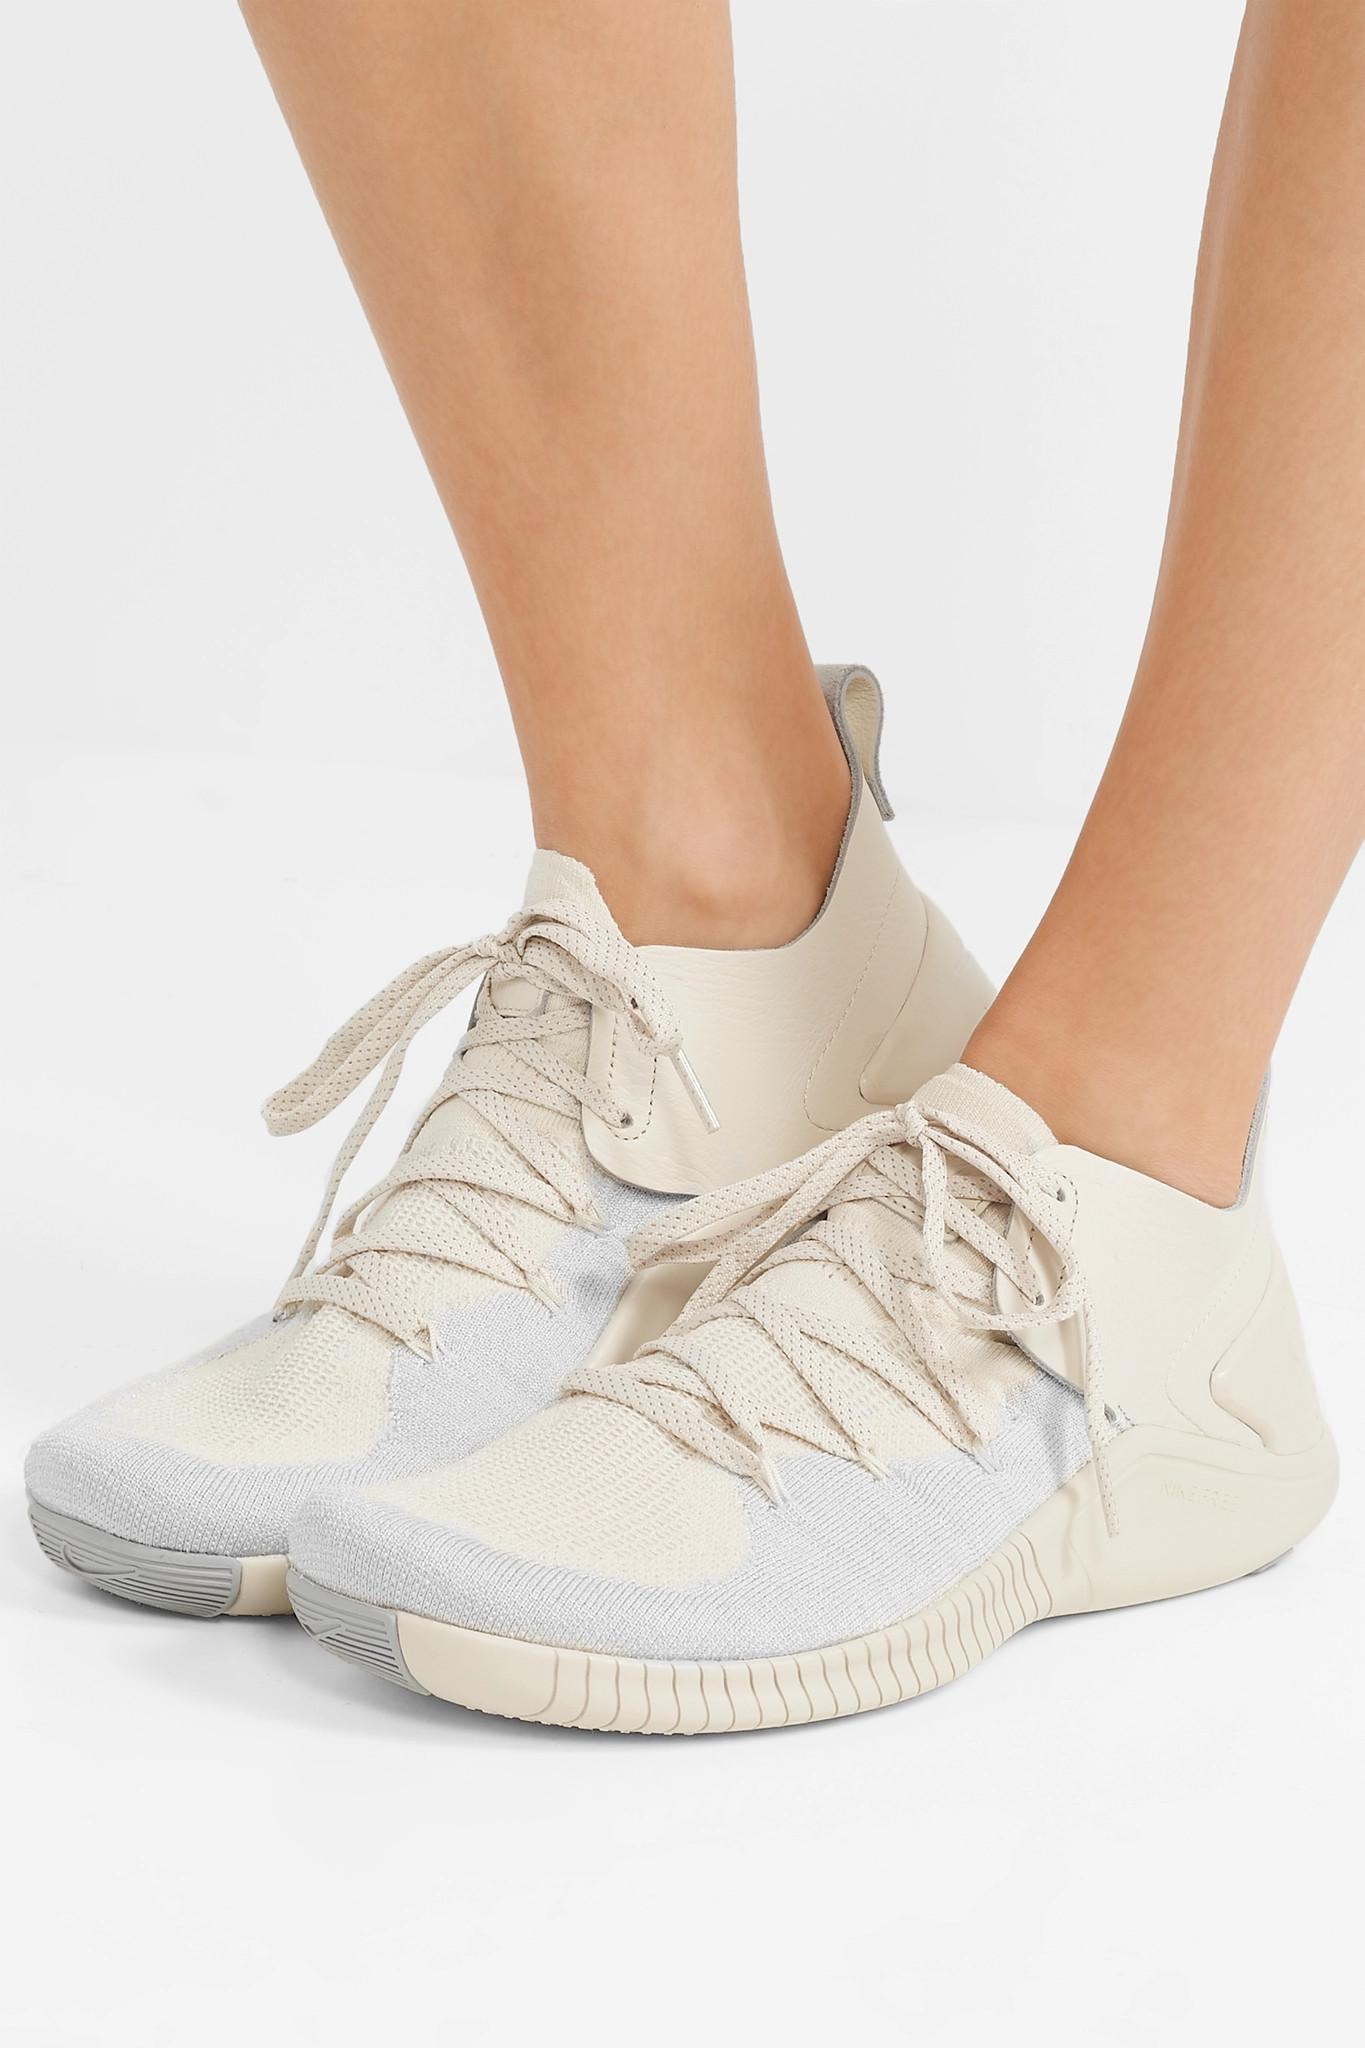 052b560ca576d Nike - Multicolor Free Tr 3 Champagne Crinkled Leather-trimmed Flyknit  Sneakers - Lyst. View fullscreen